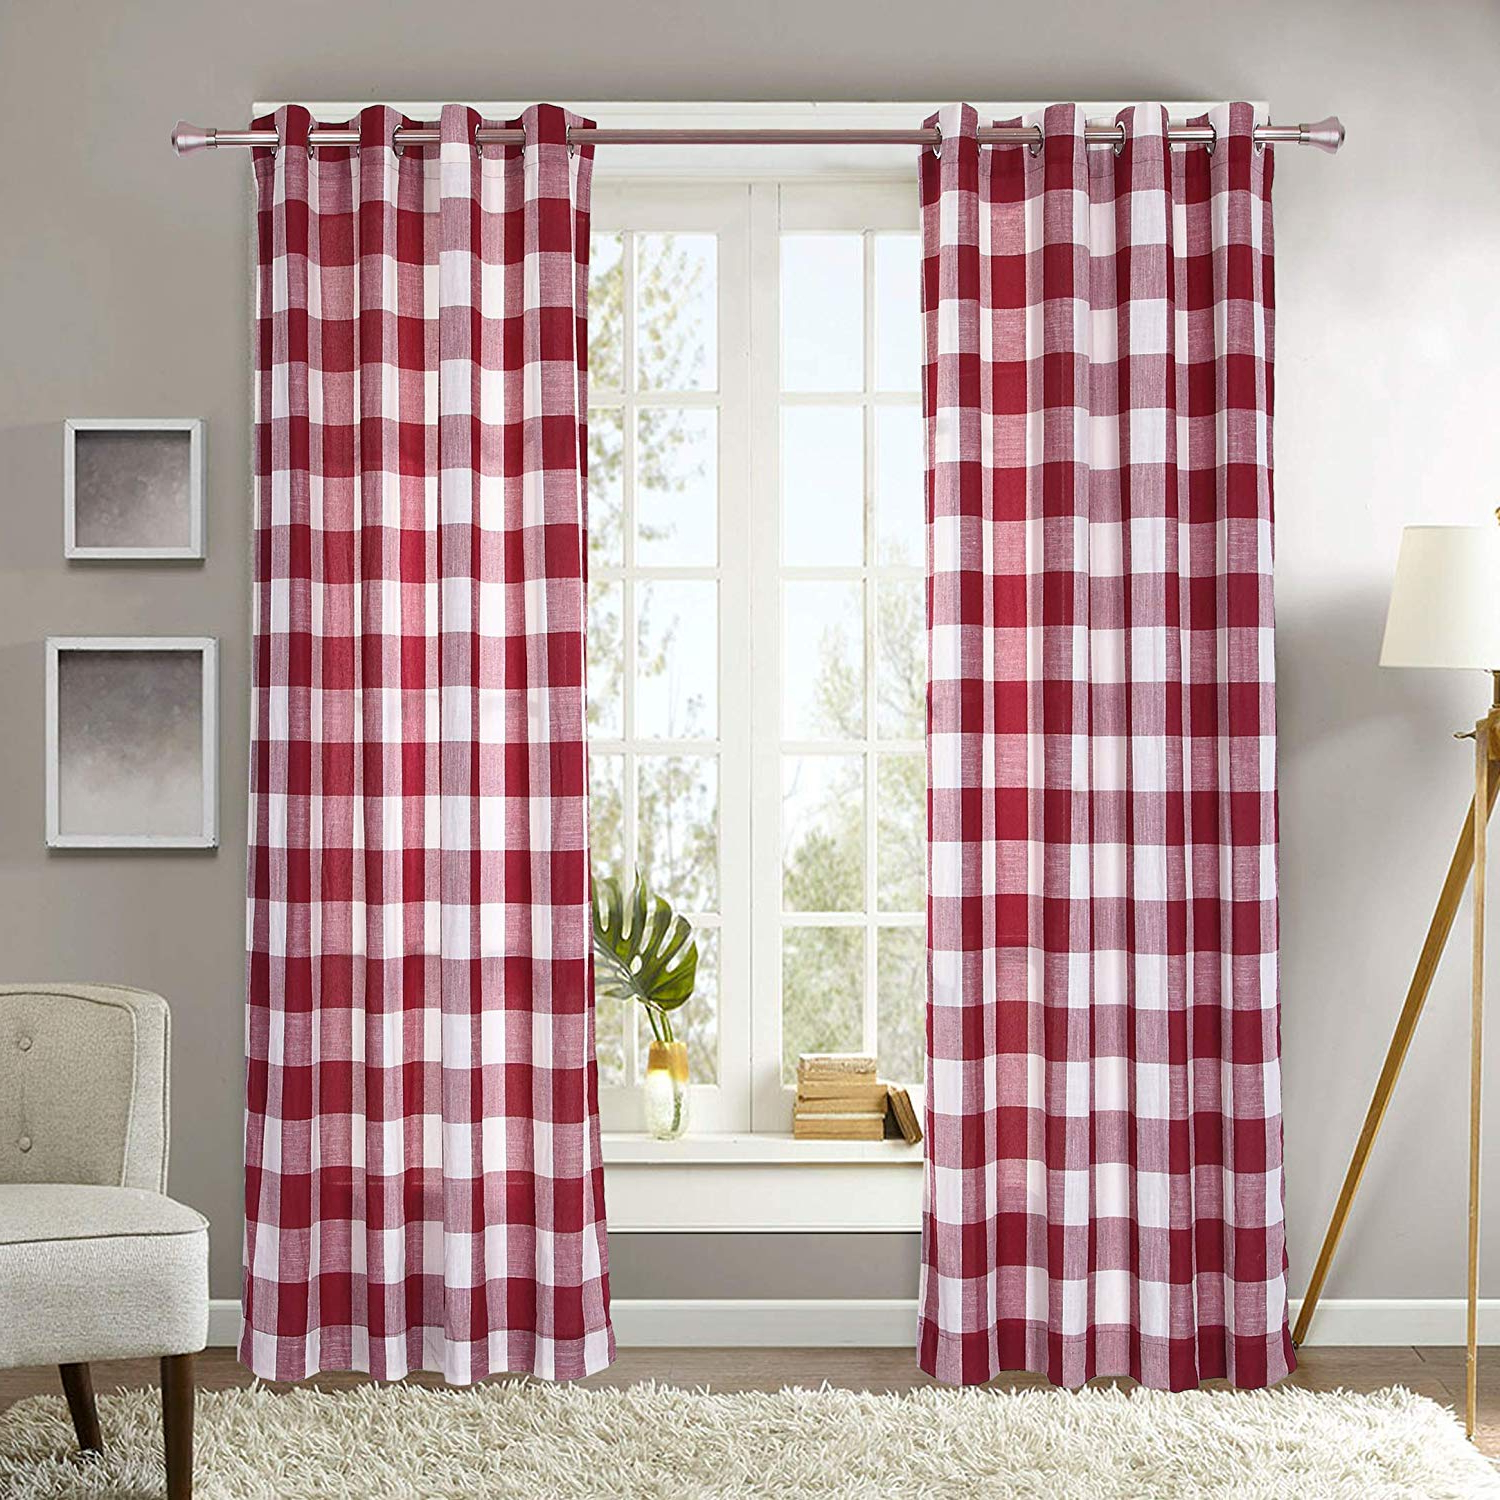 """Preferred Burgundy Cotton Blend Classic Checkered Decorative Window Curtains Throughout Decotex 1 Piece Plaid Buffalo Checkered Grommet Top Window Curtain Drape Panel Or Valance (53"""" X 84"""", Burgundy/beige) (View 16 of 20)"""